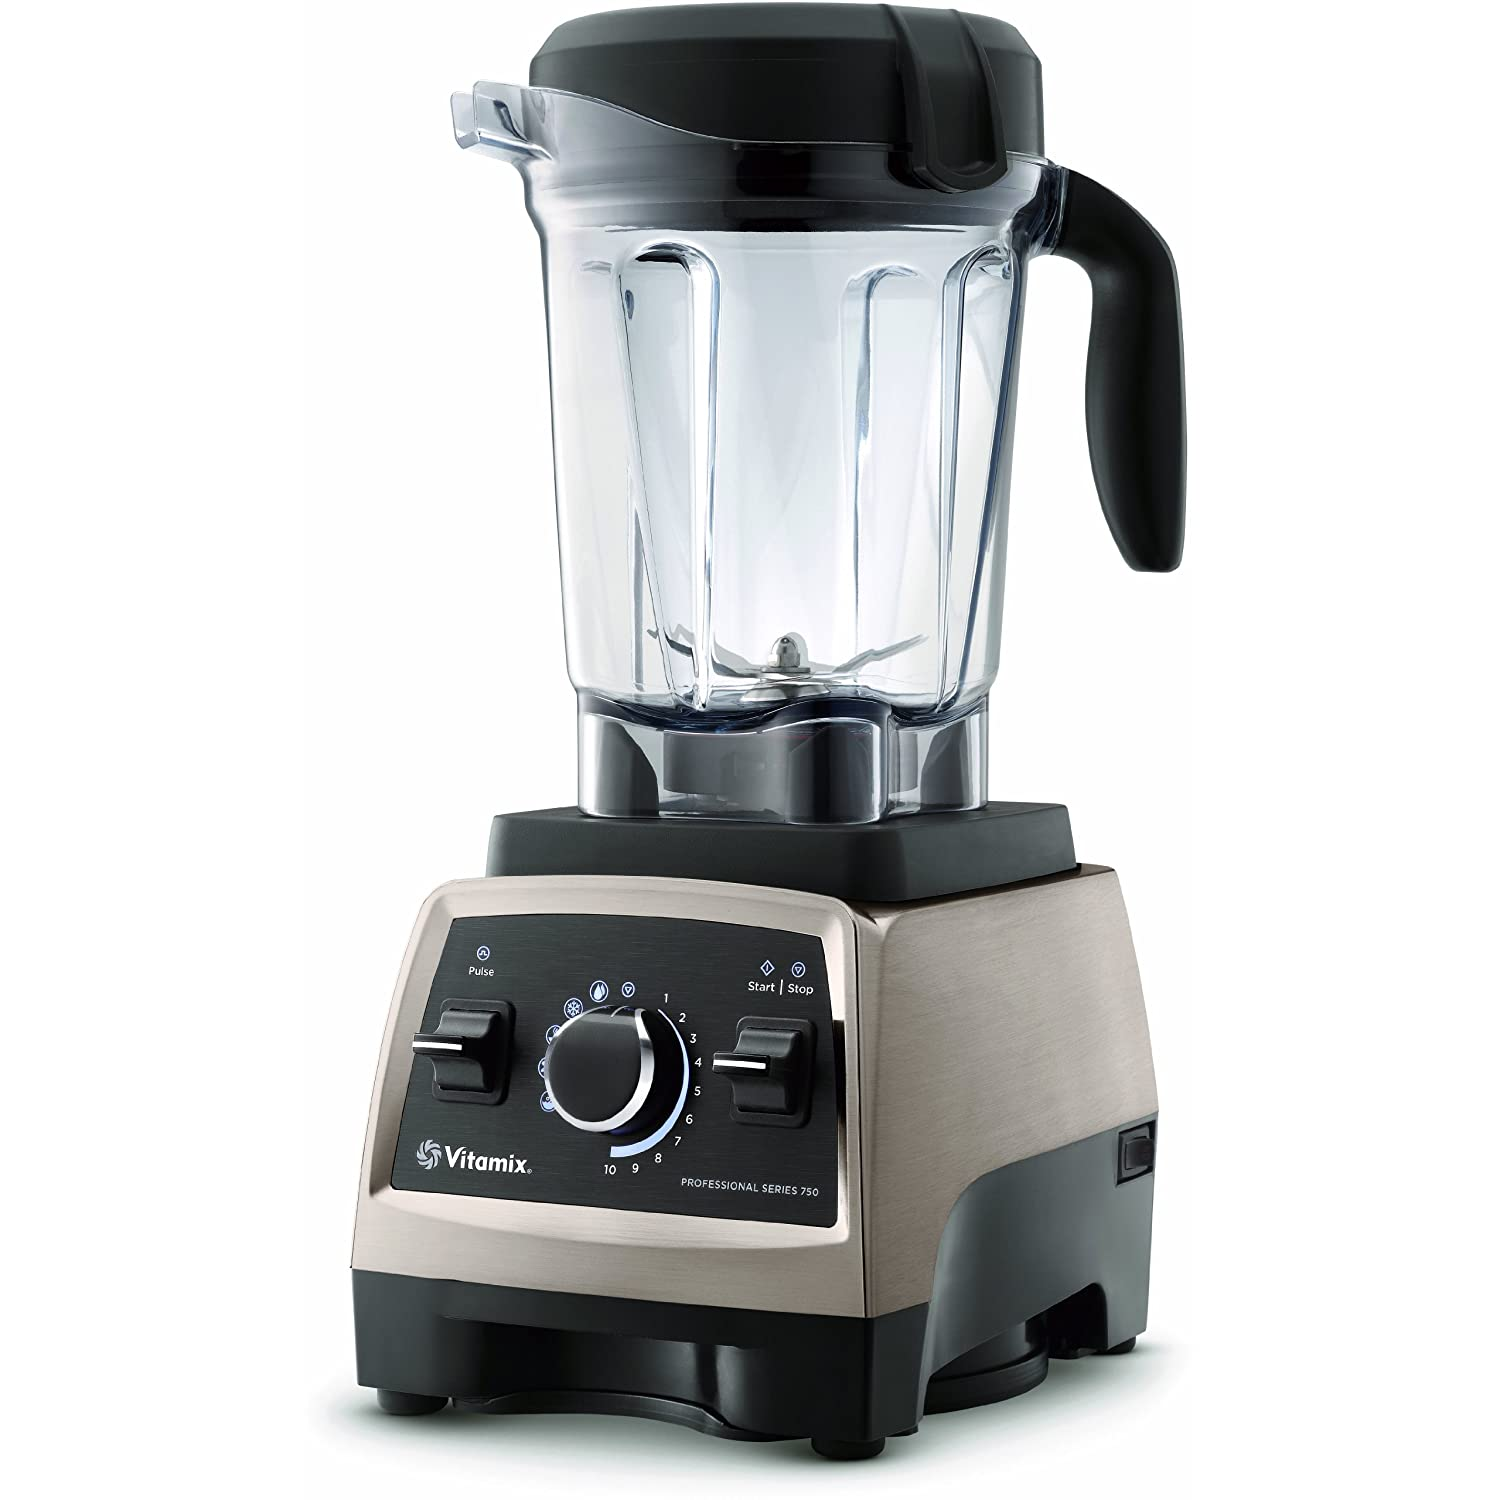 Vitamix Professional Series 750 Brushed Stainless Finish With 64 oz. Container